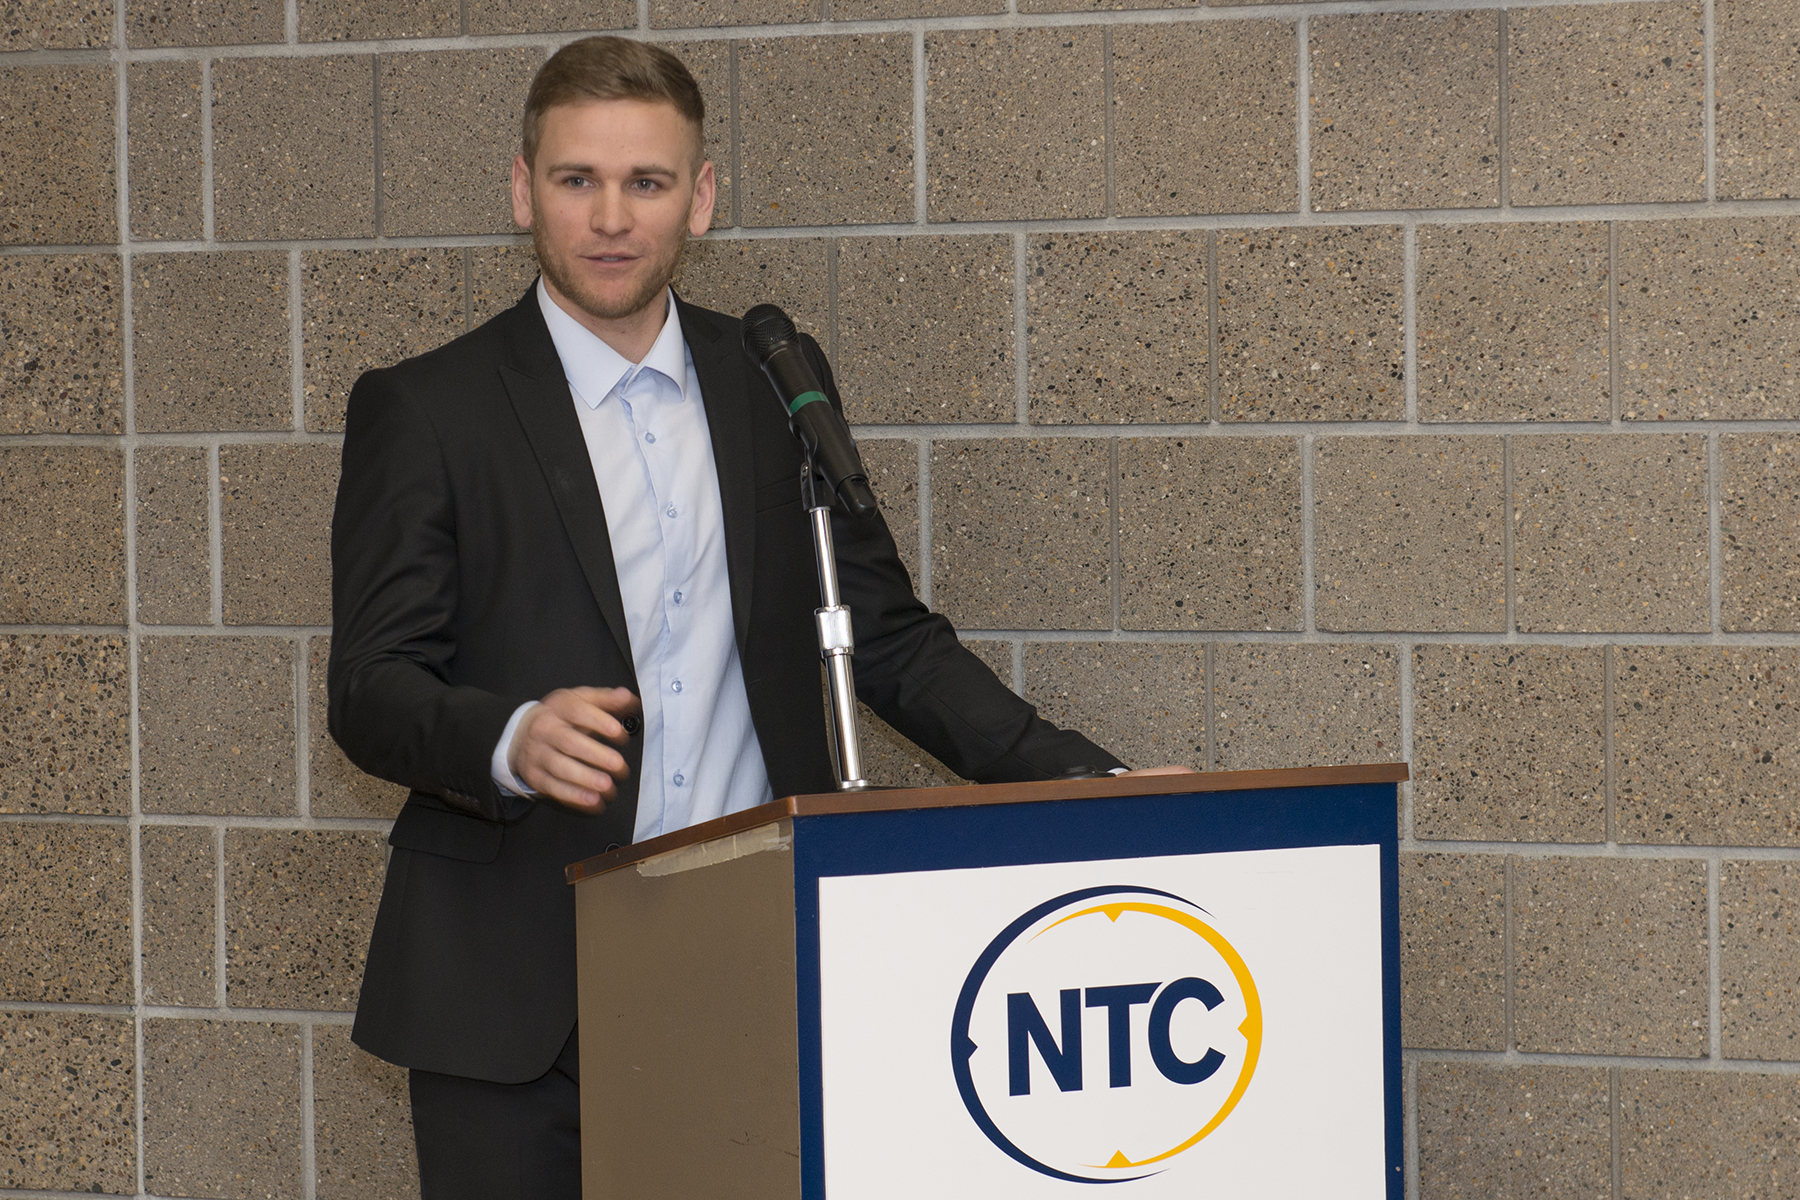 Tyler Peterson, NTC student success coordinator speaking at the first annual Student Achievement Awards ceremony.